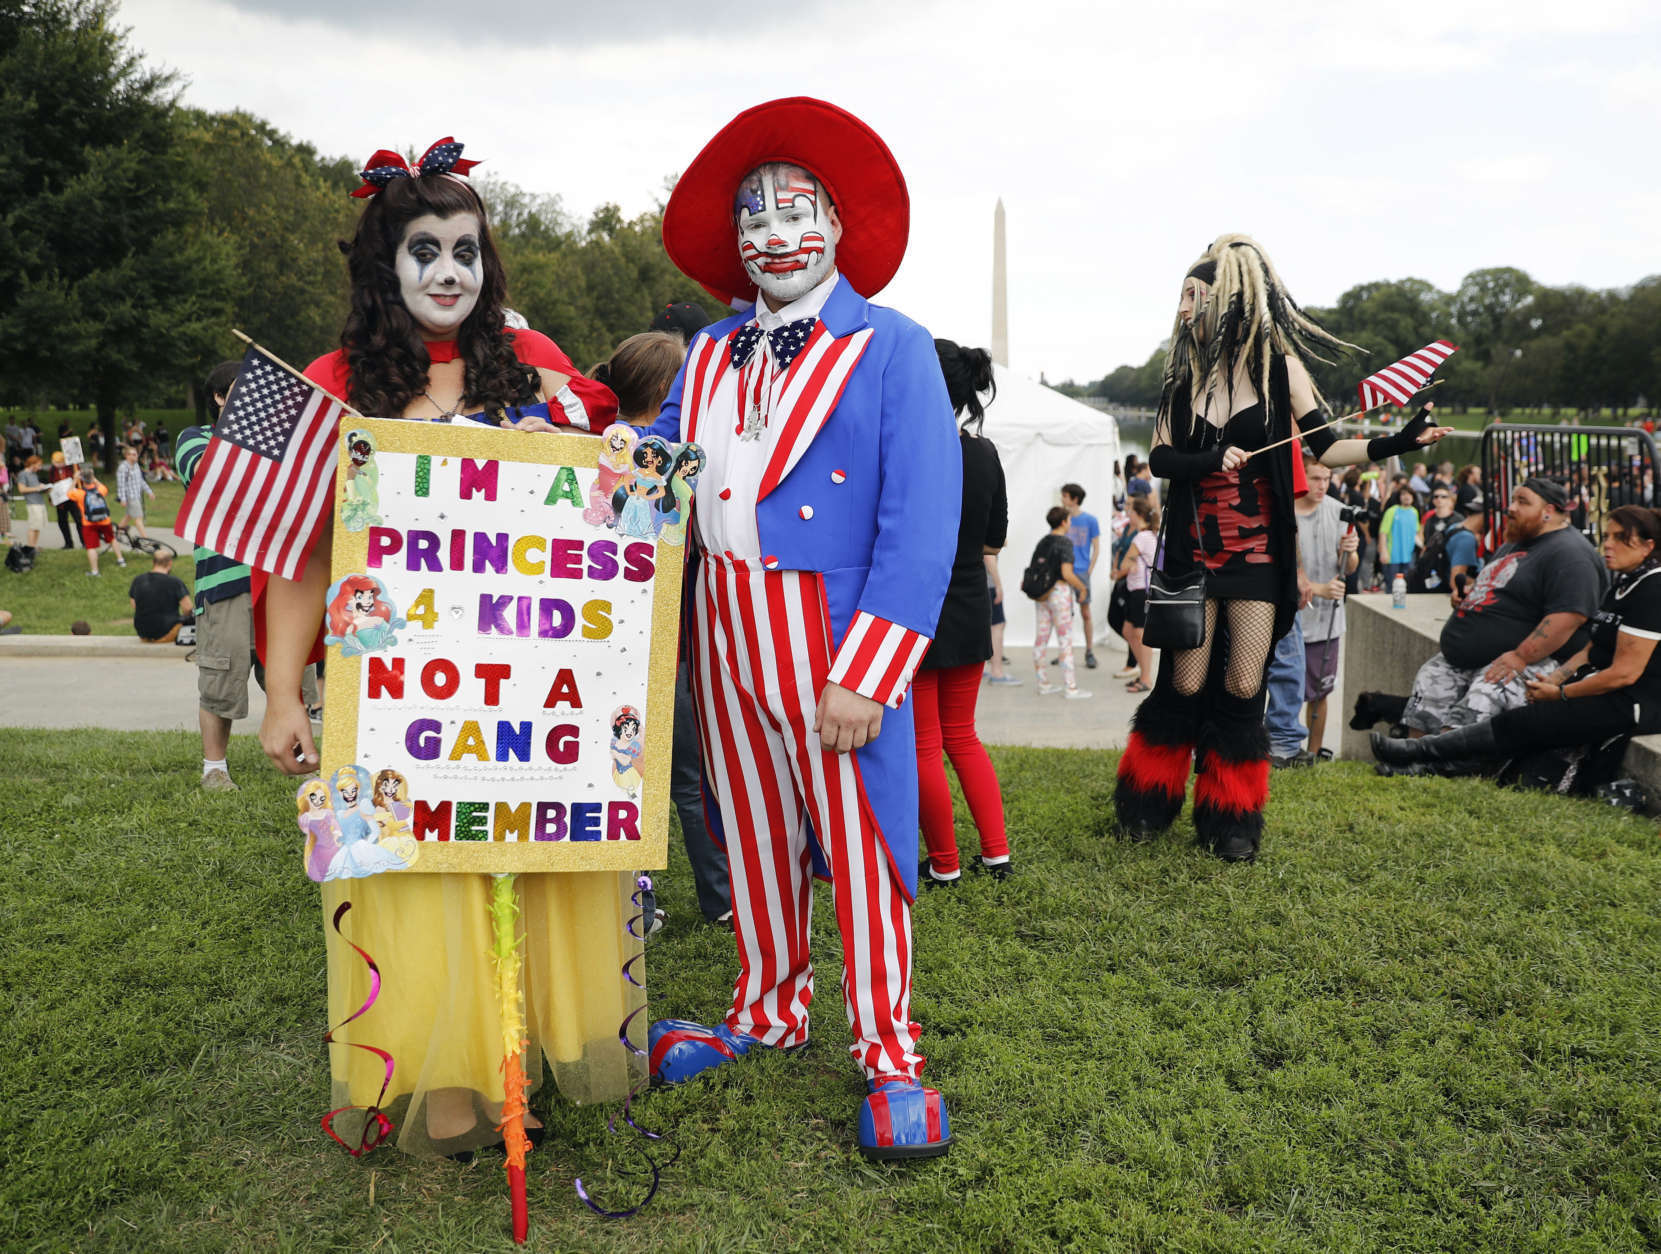 """Theresa Lindsey, left, dressed as Snow White and Timothy Schlarmann, center, dressed as Uncle Sam, both from southern California, join other juggalos, as supporters of the rap group Insane Clown Posse are known, in front of the Lincoln Memorial in Washington during a rally, Saturday, Sept. 16, 2017, to protest and demand that the FBI rescind its classification of the juggalos as """"loosely organized hybrid gang."""" (AP Photo/Pablo Martinez Monsivais)"""